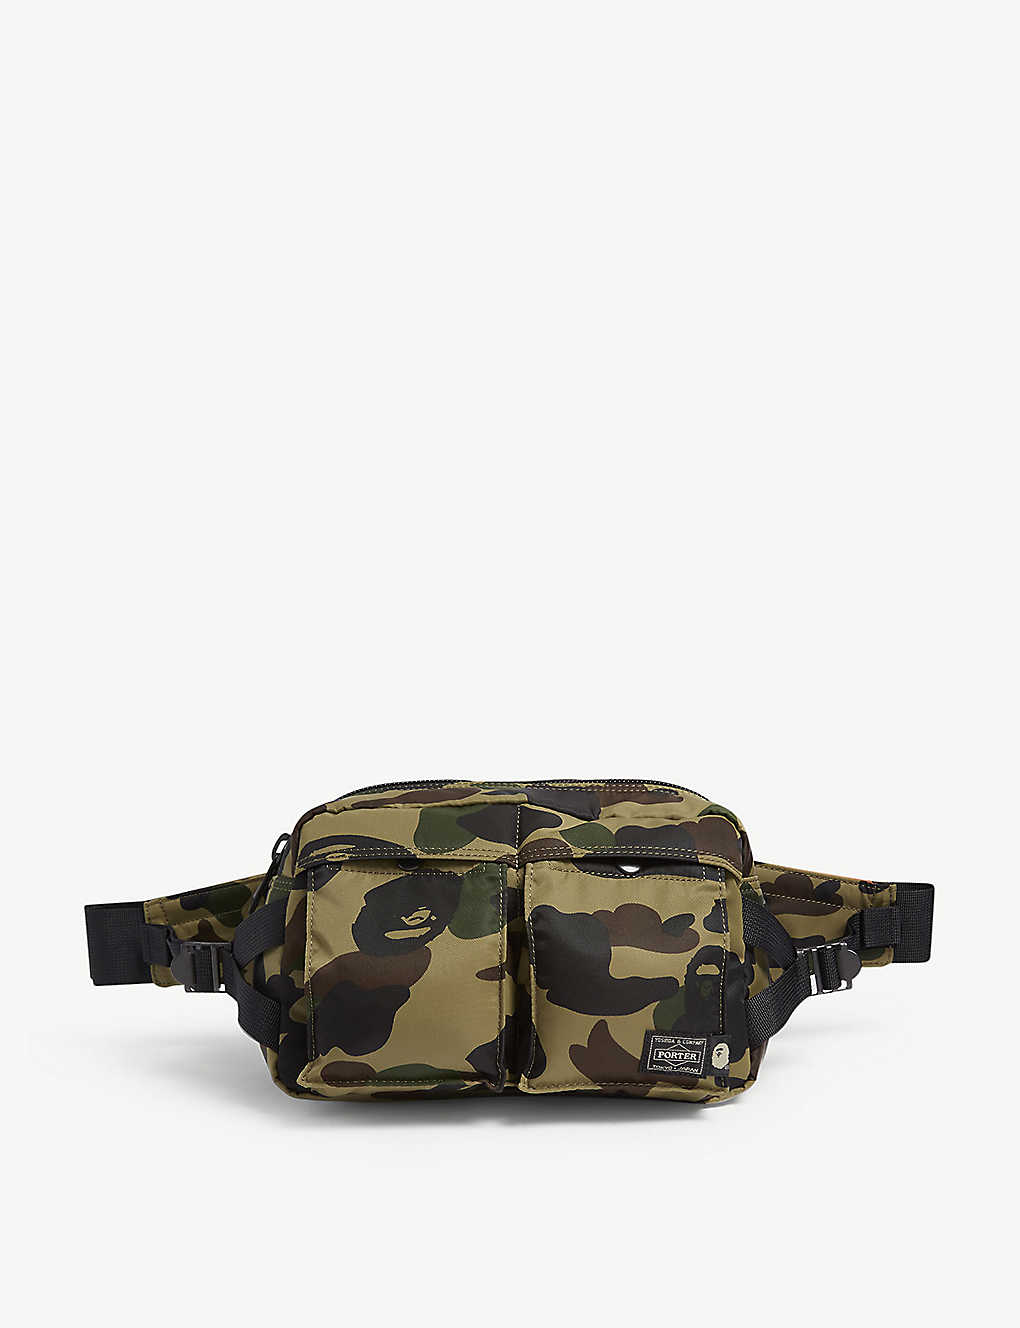 72a8699519de A BATHING APE - Bape x Head Porter camouflage-print belt bag ...